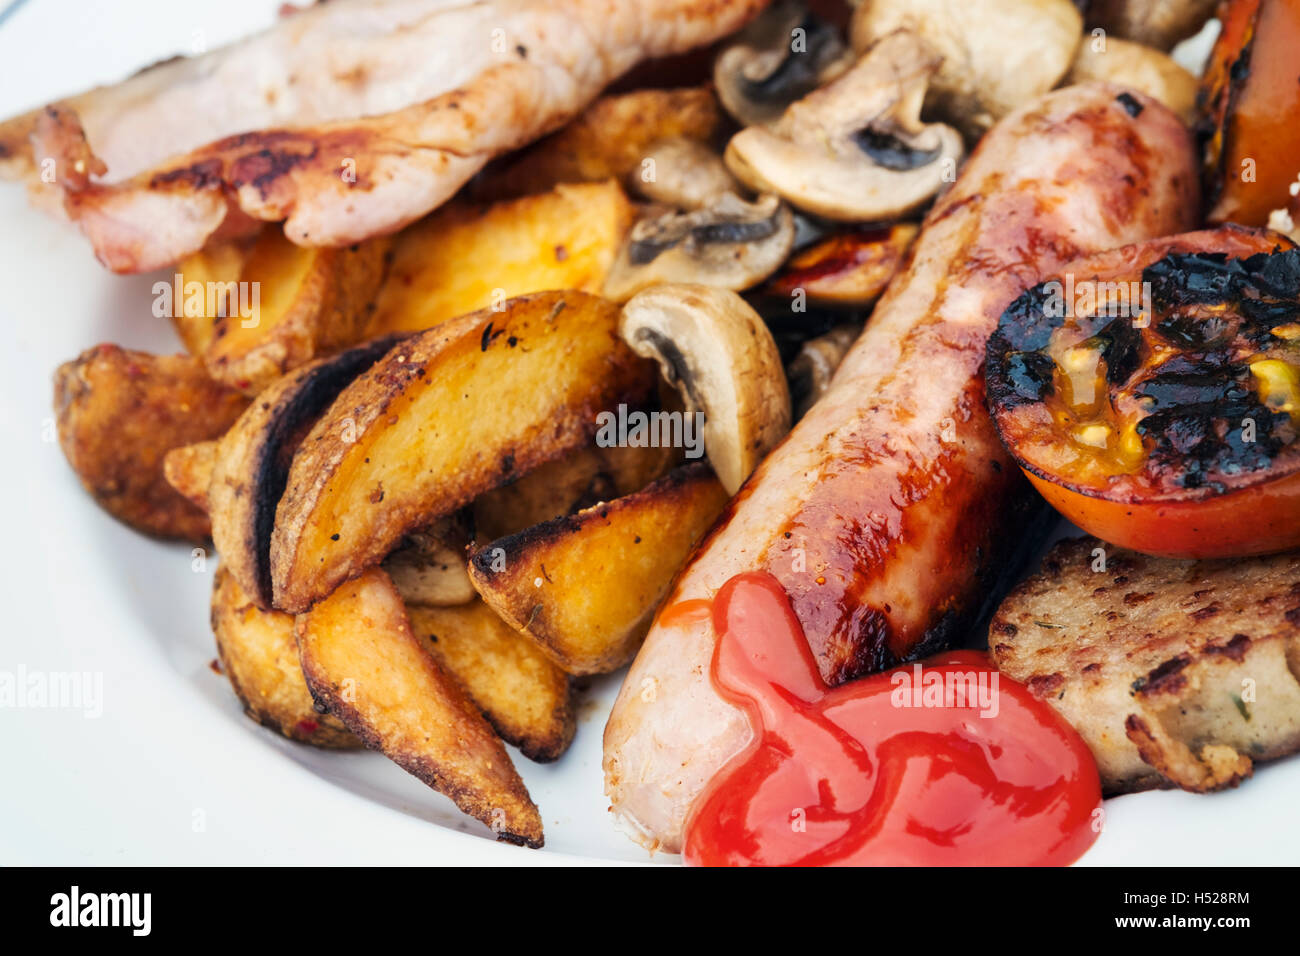 Close up of a plate of food, English Breakfast, bacon, mushrooms, sausage, grilled tomato, potatoes and tomato sauce. - Stock Image